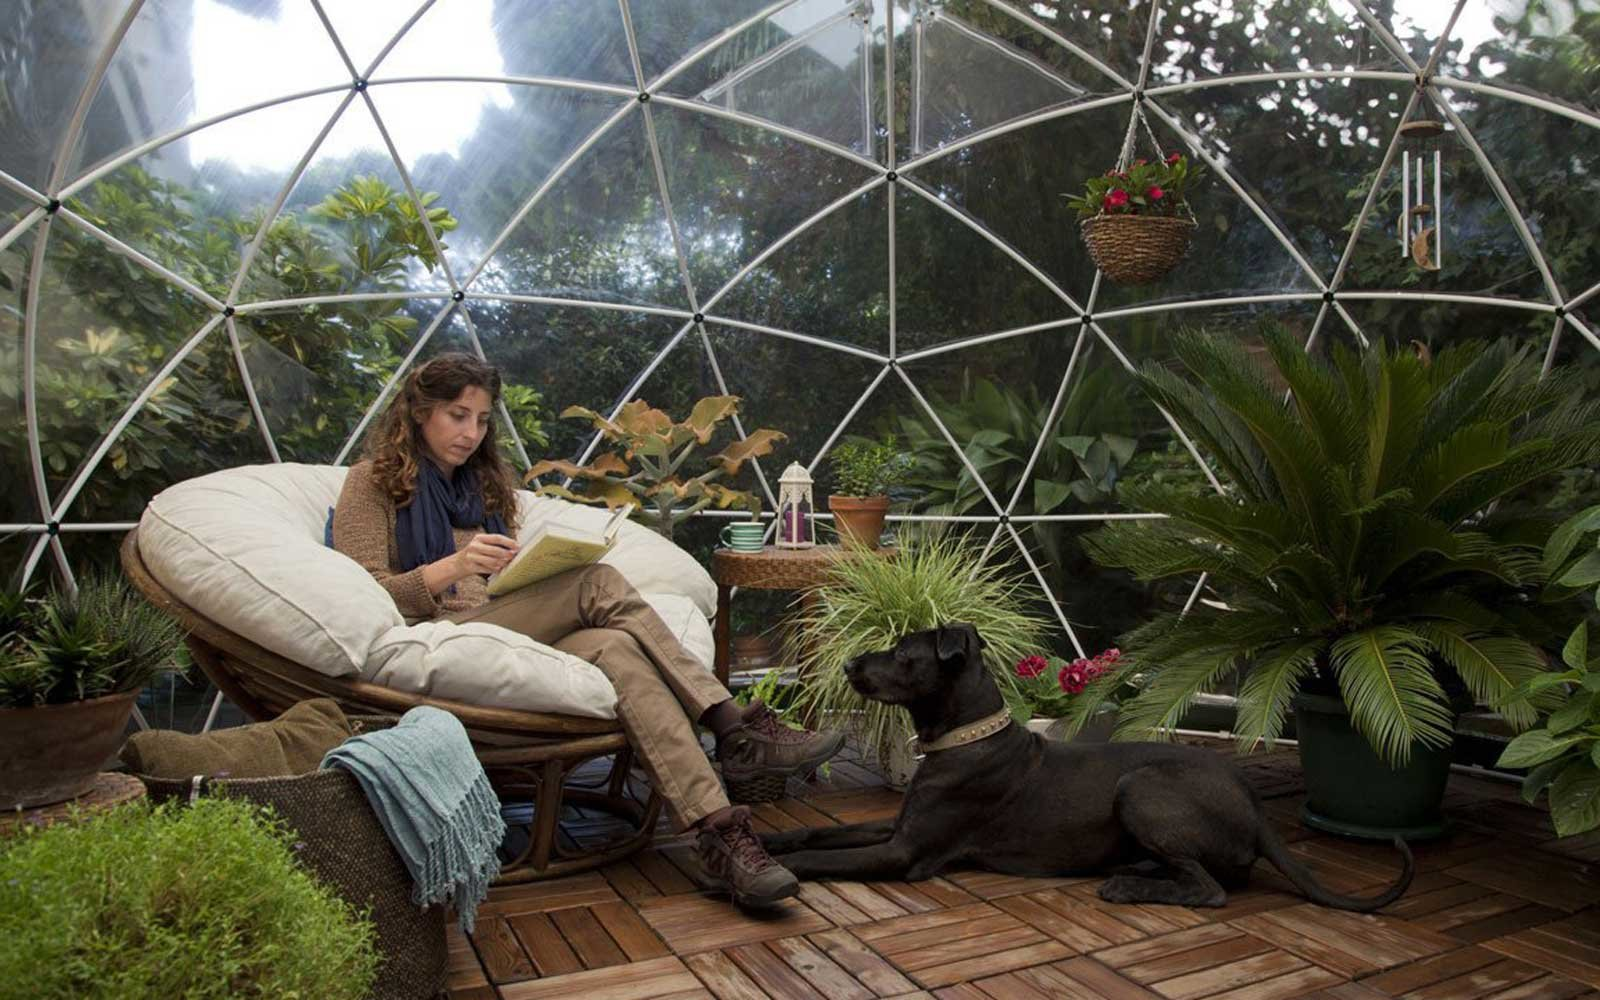 This Stunning Garden Dome Is Perfect for Backyard Glamping, and It's Available on Amazon